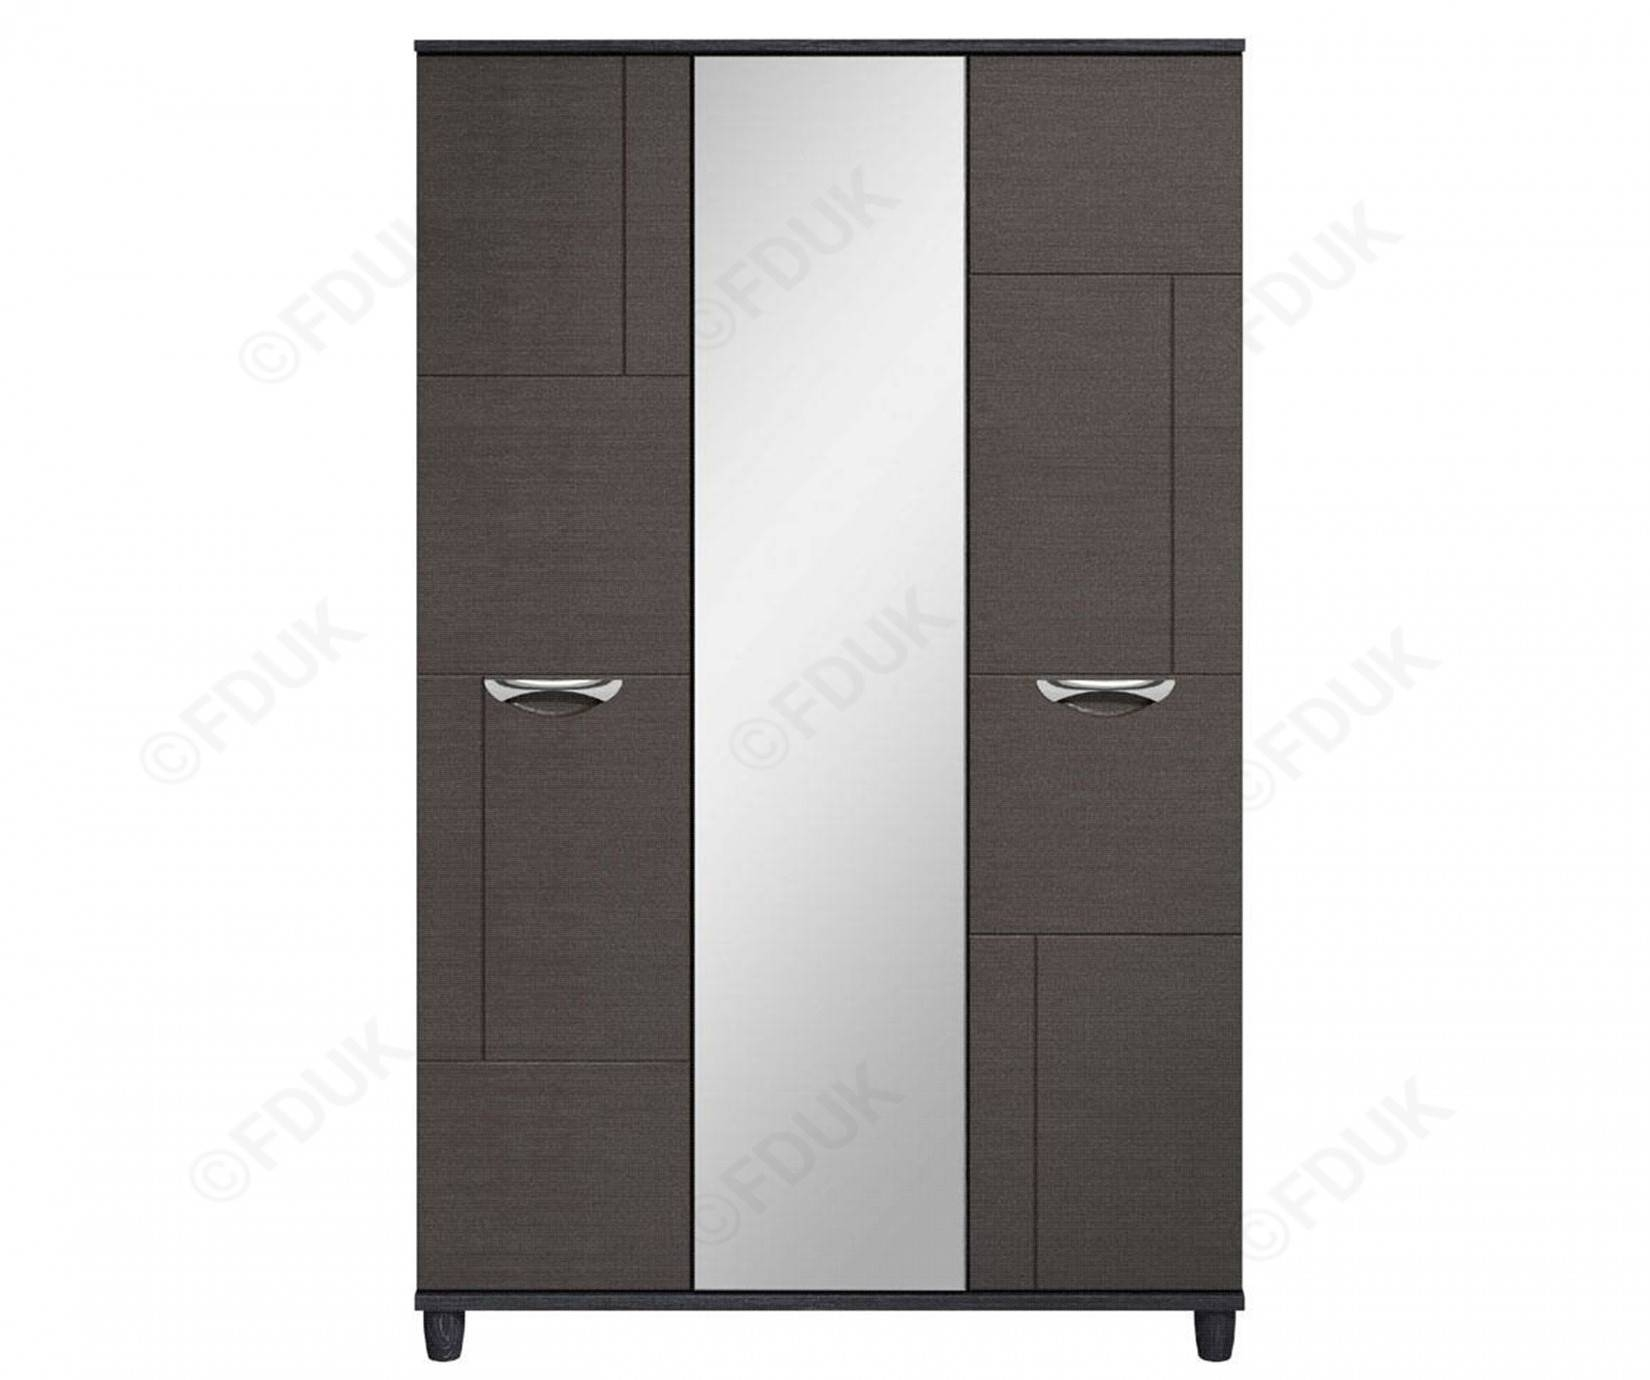 Kt Moda | Graphite And Black 3 Door Mirrored Wardrobe pertaining to Black 3 Door Wardrobes (Image 12 of 15)